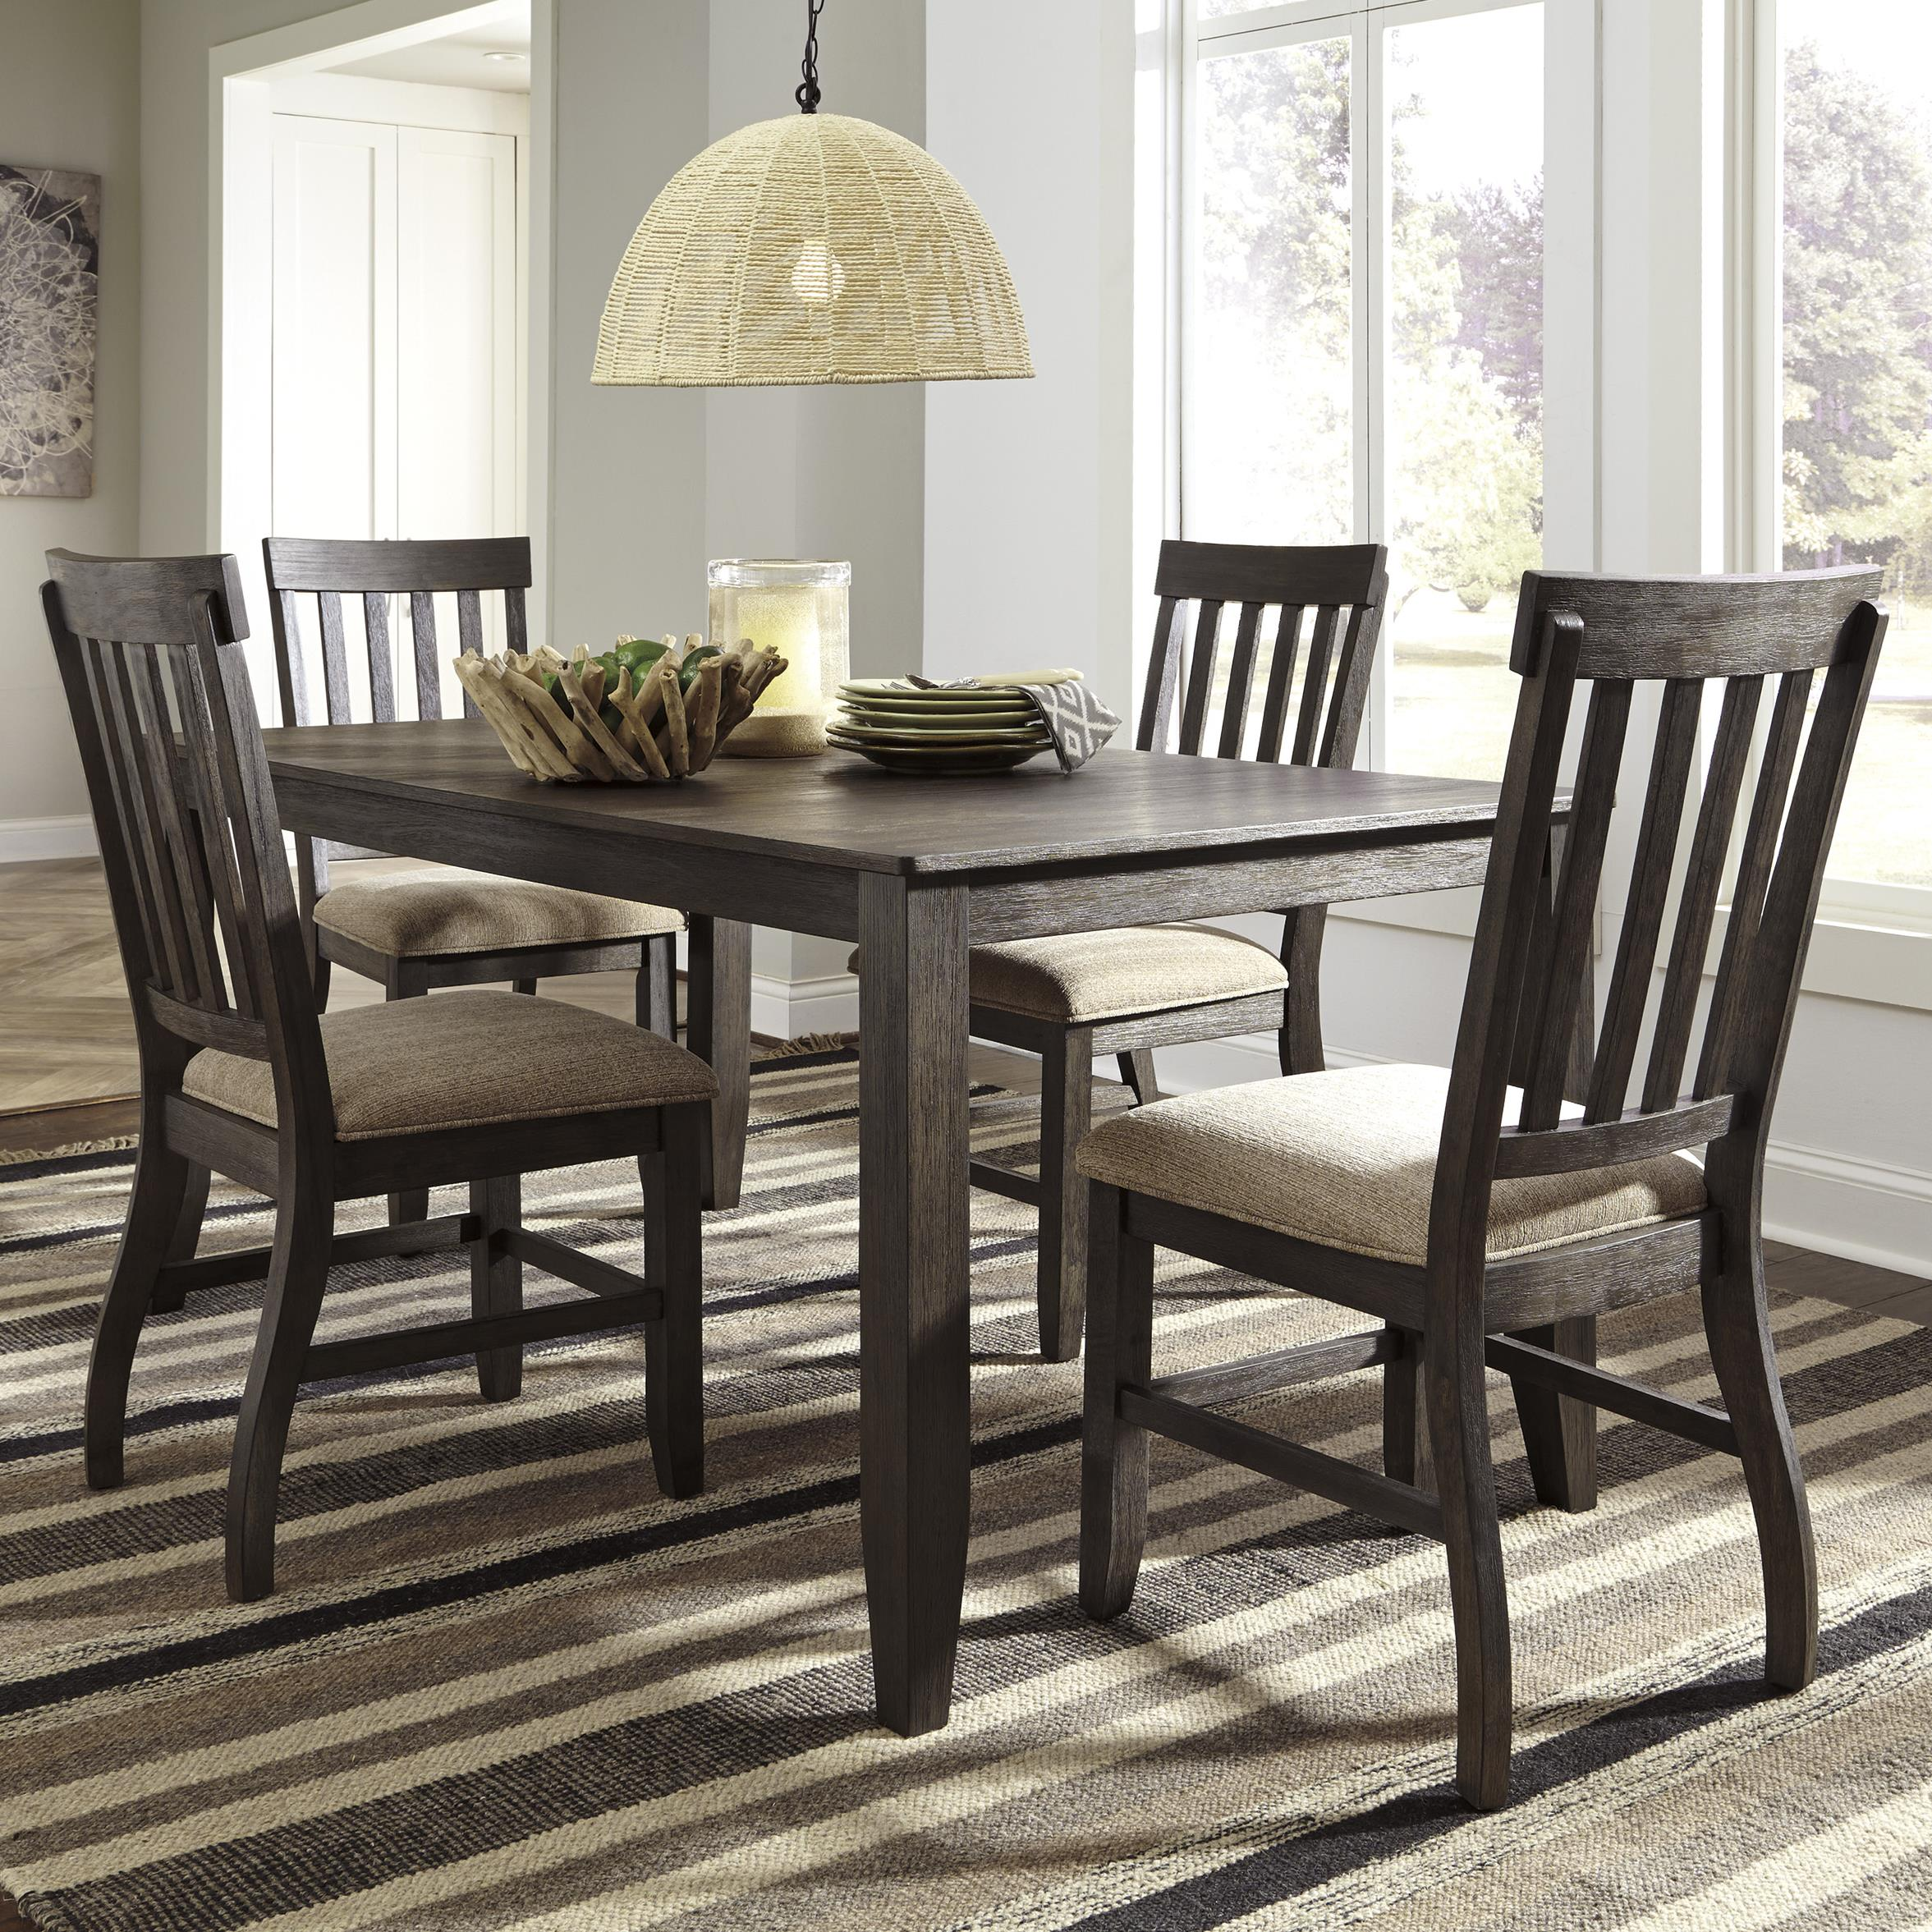 Ashley Signature Design Dresbar 5 Piece Rectangular Dining Table Set